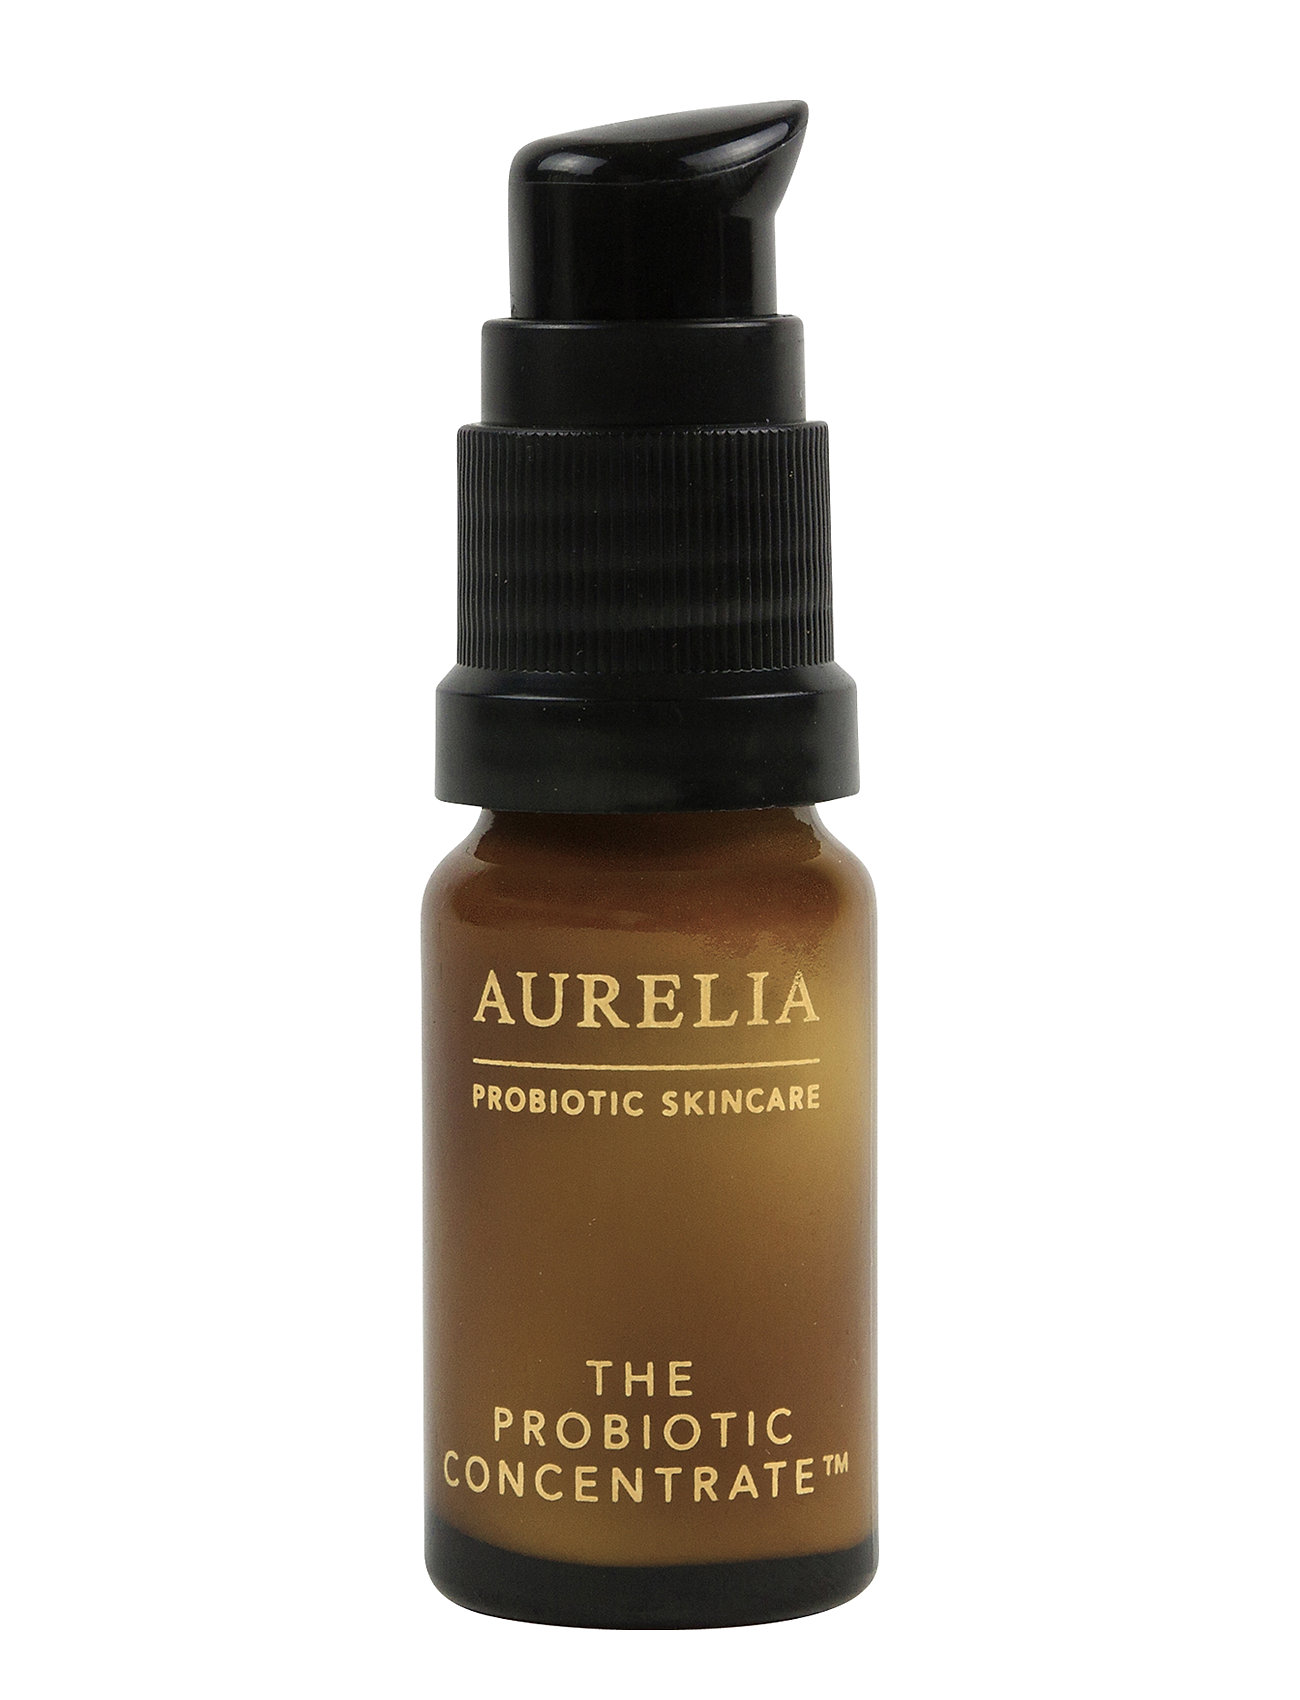 Image of Probiotic Concentrate Serum Ansigtspleje Aurelia Probiotic Skincare (3176000705)